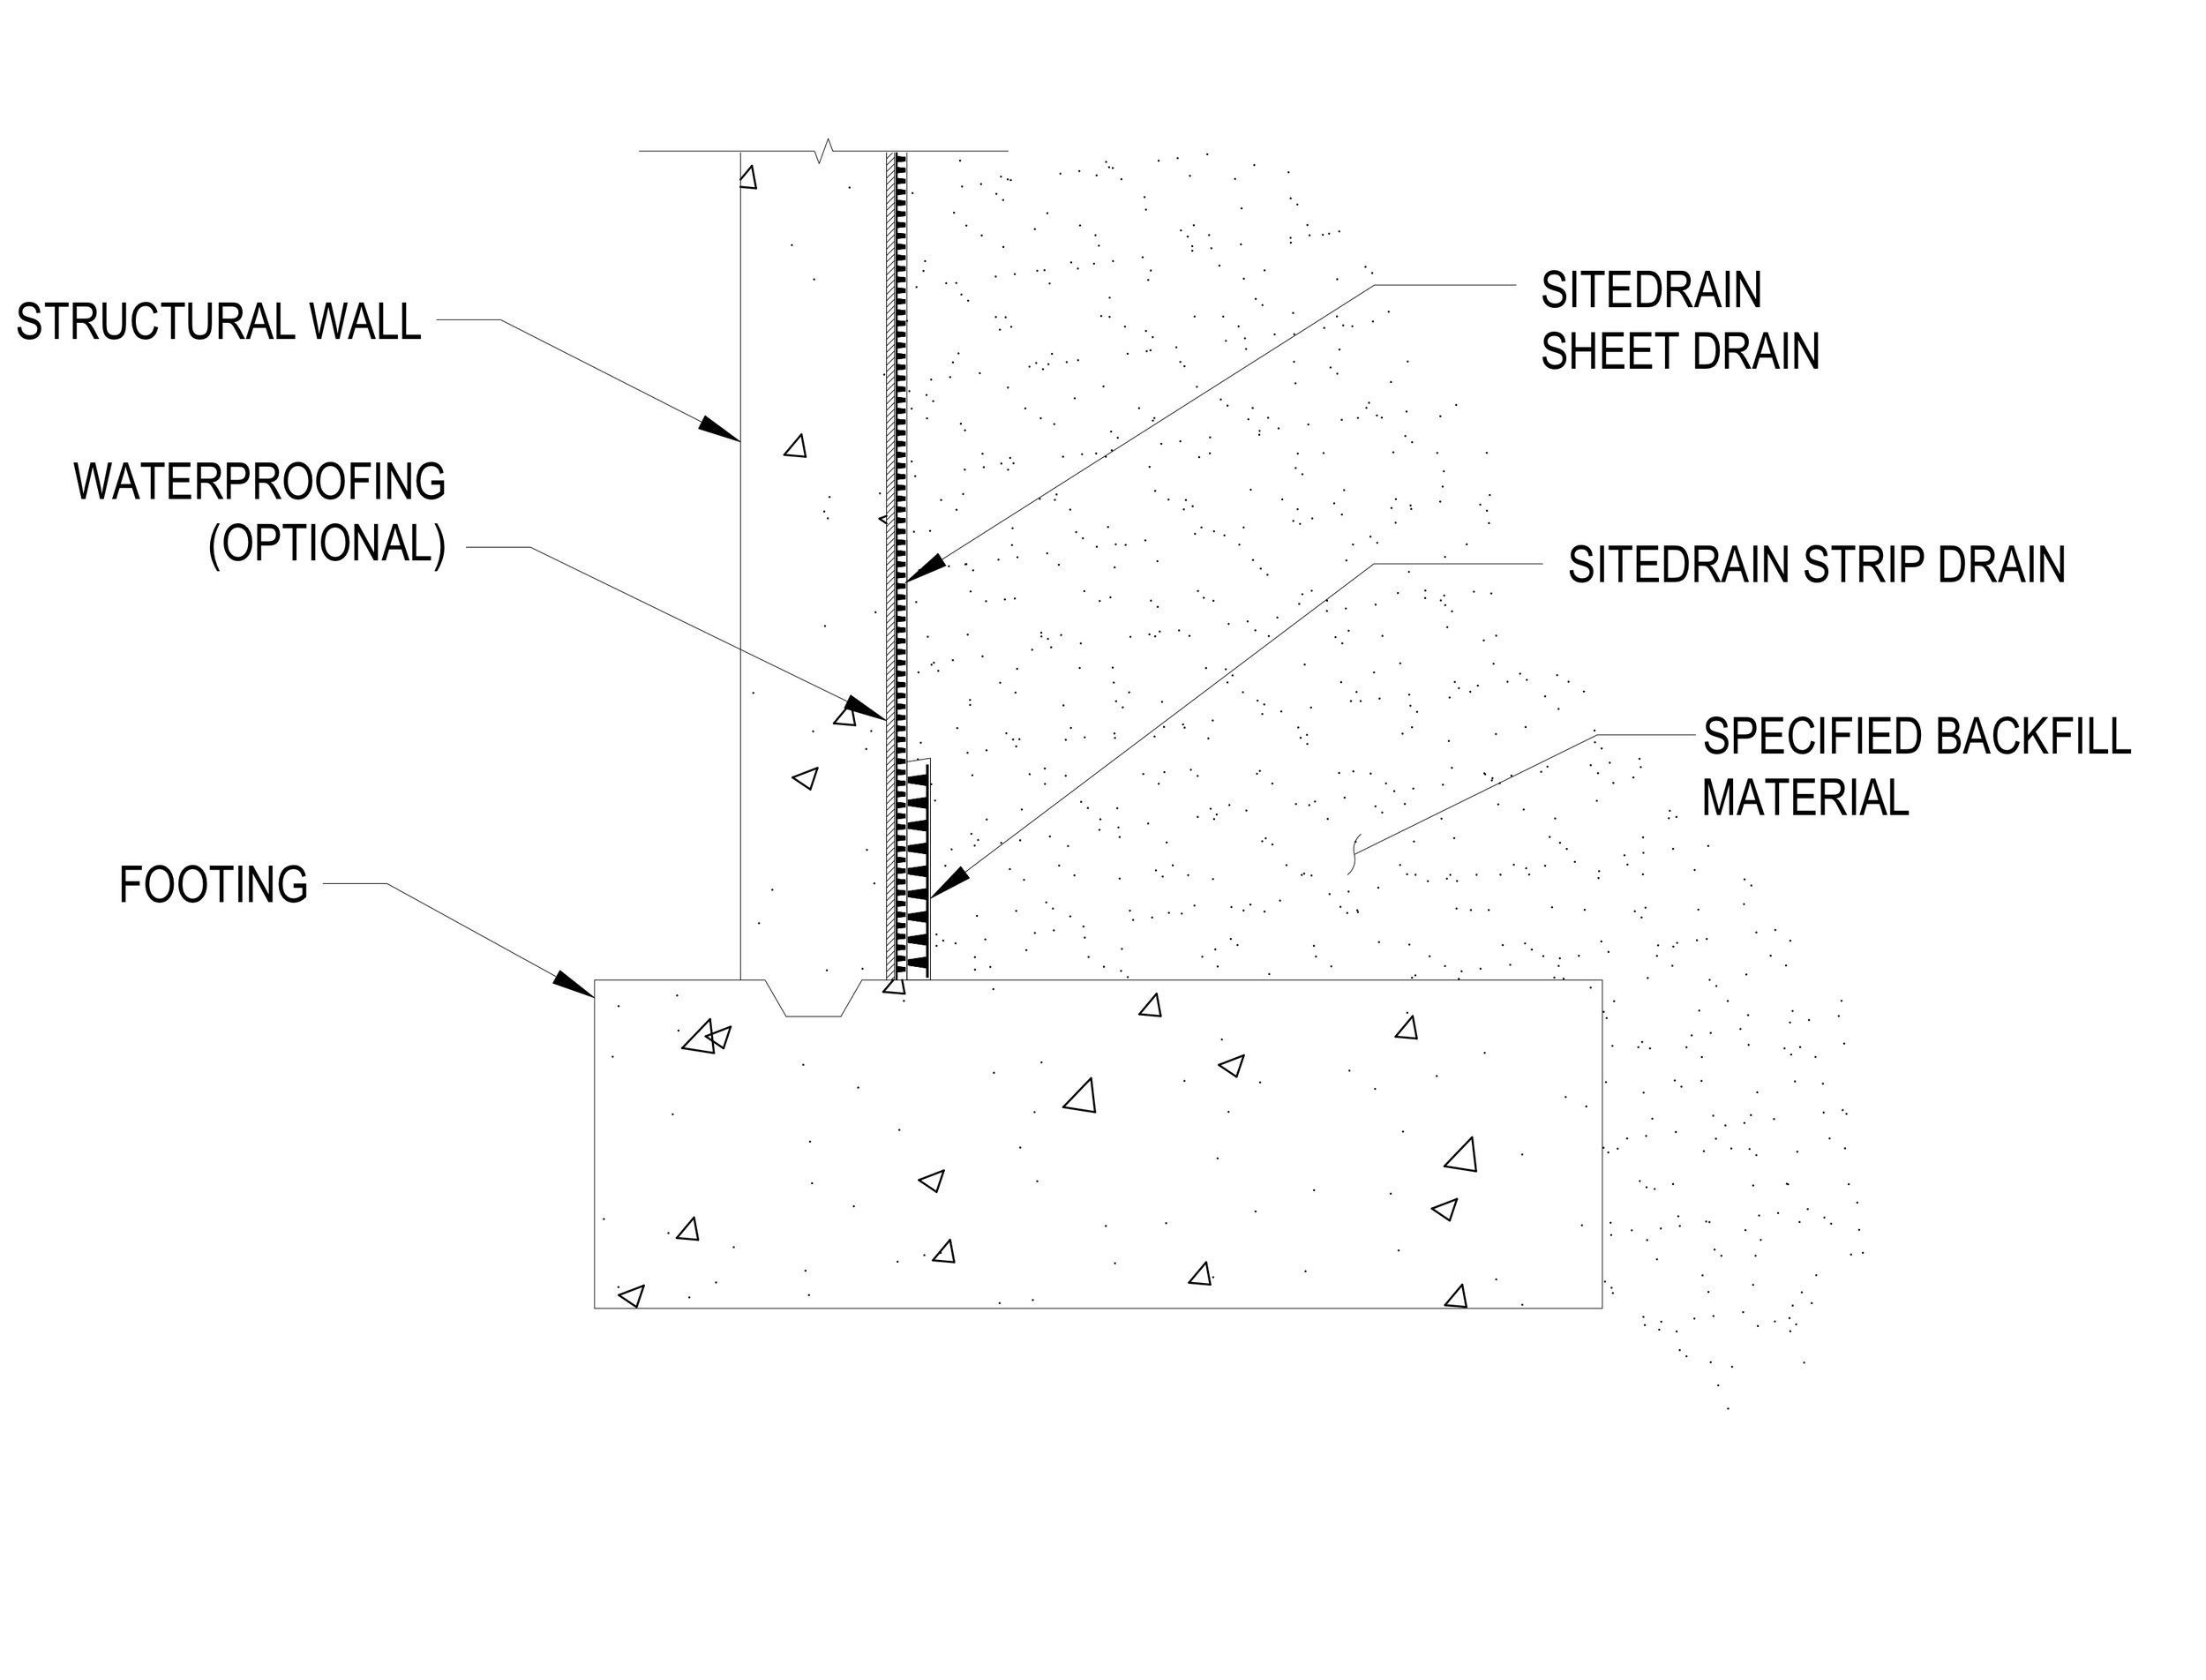 AWD-103 - Retaining Wall Drainage - Sheet & Strip Drain - Image Only Model6.jpg